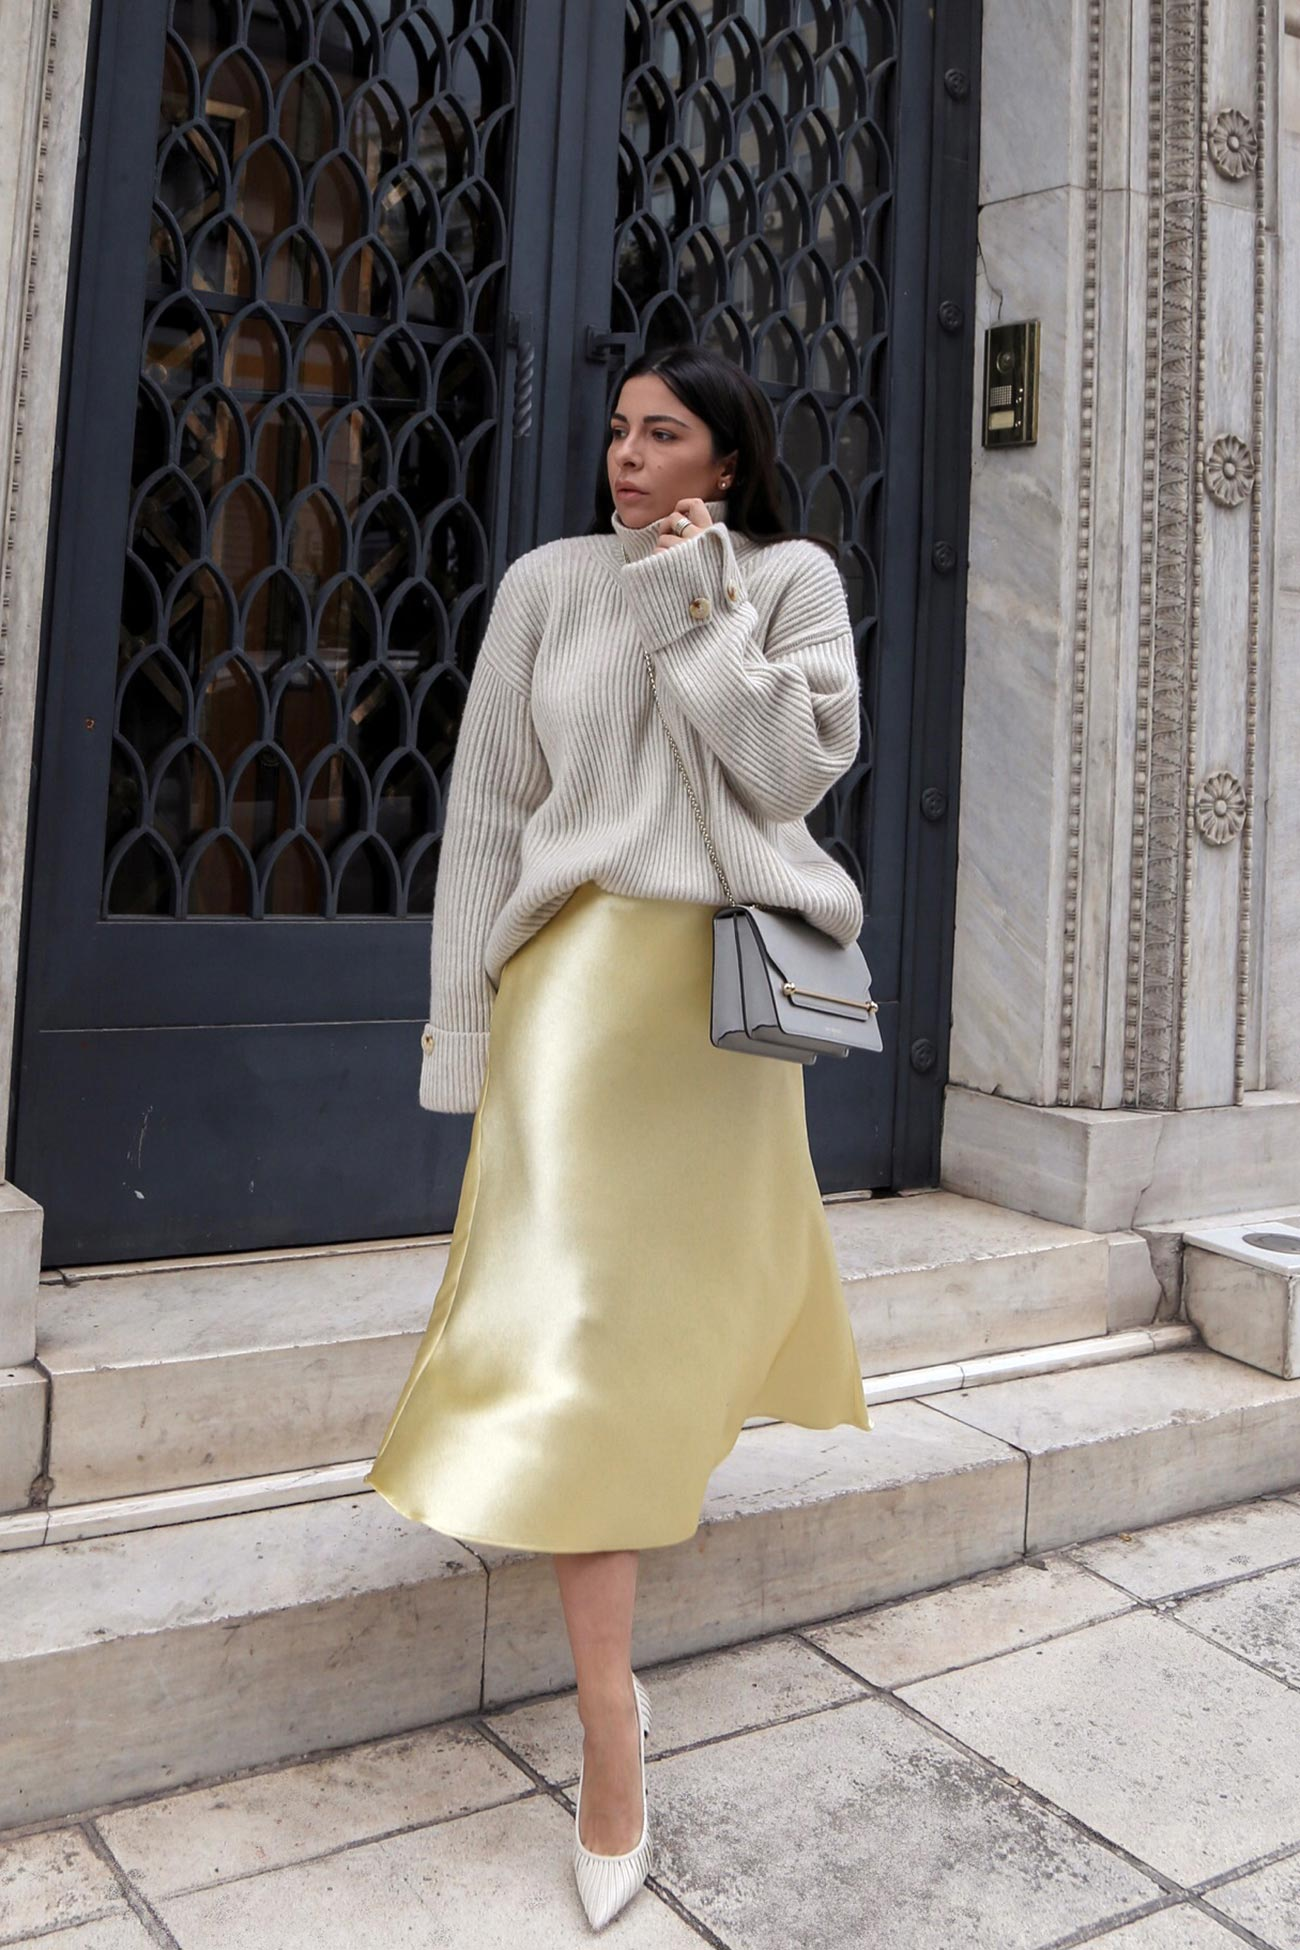 satin skirt and sweater